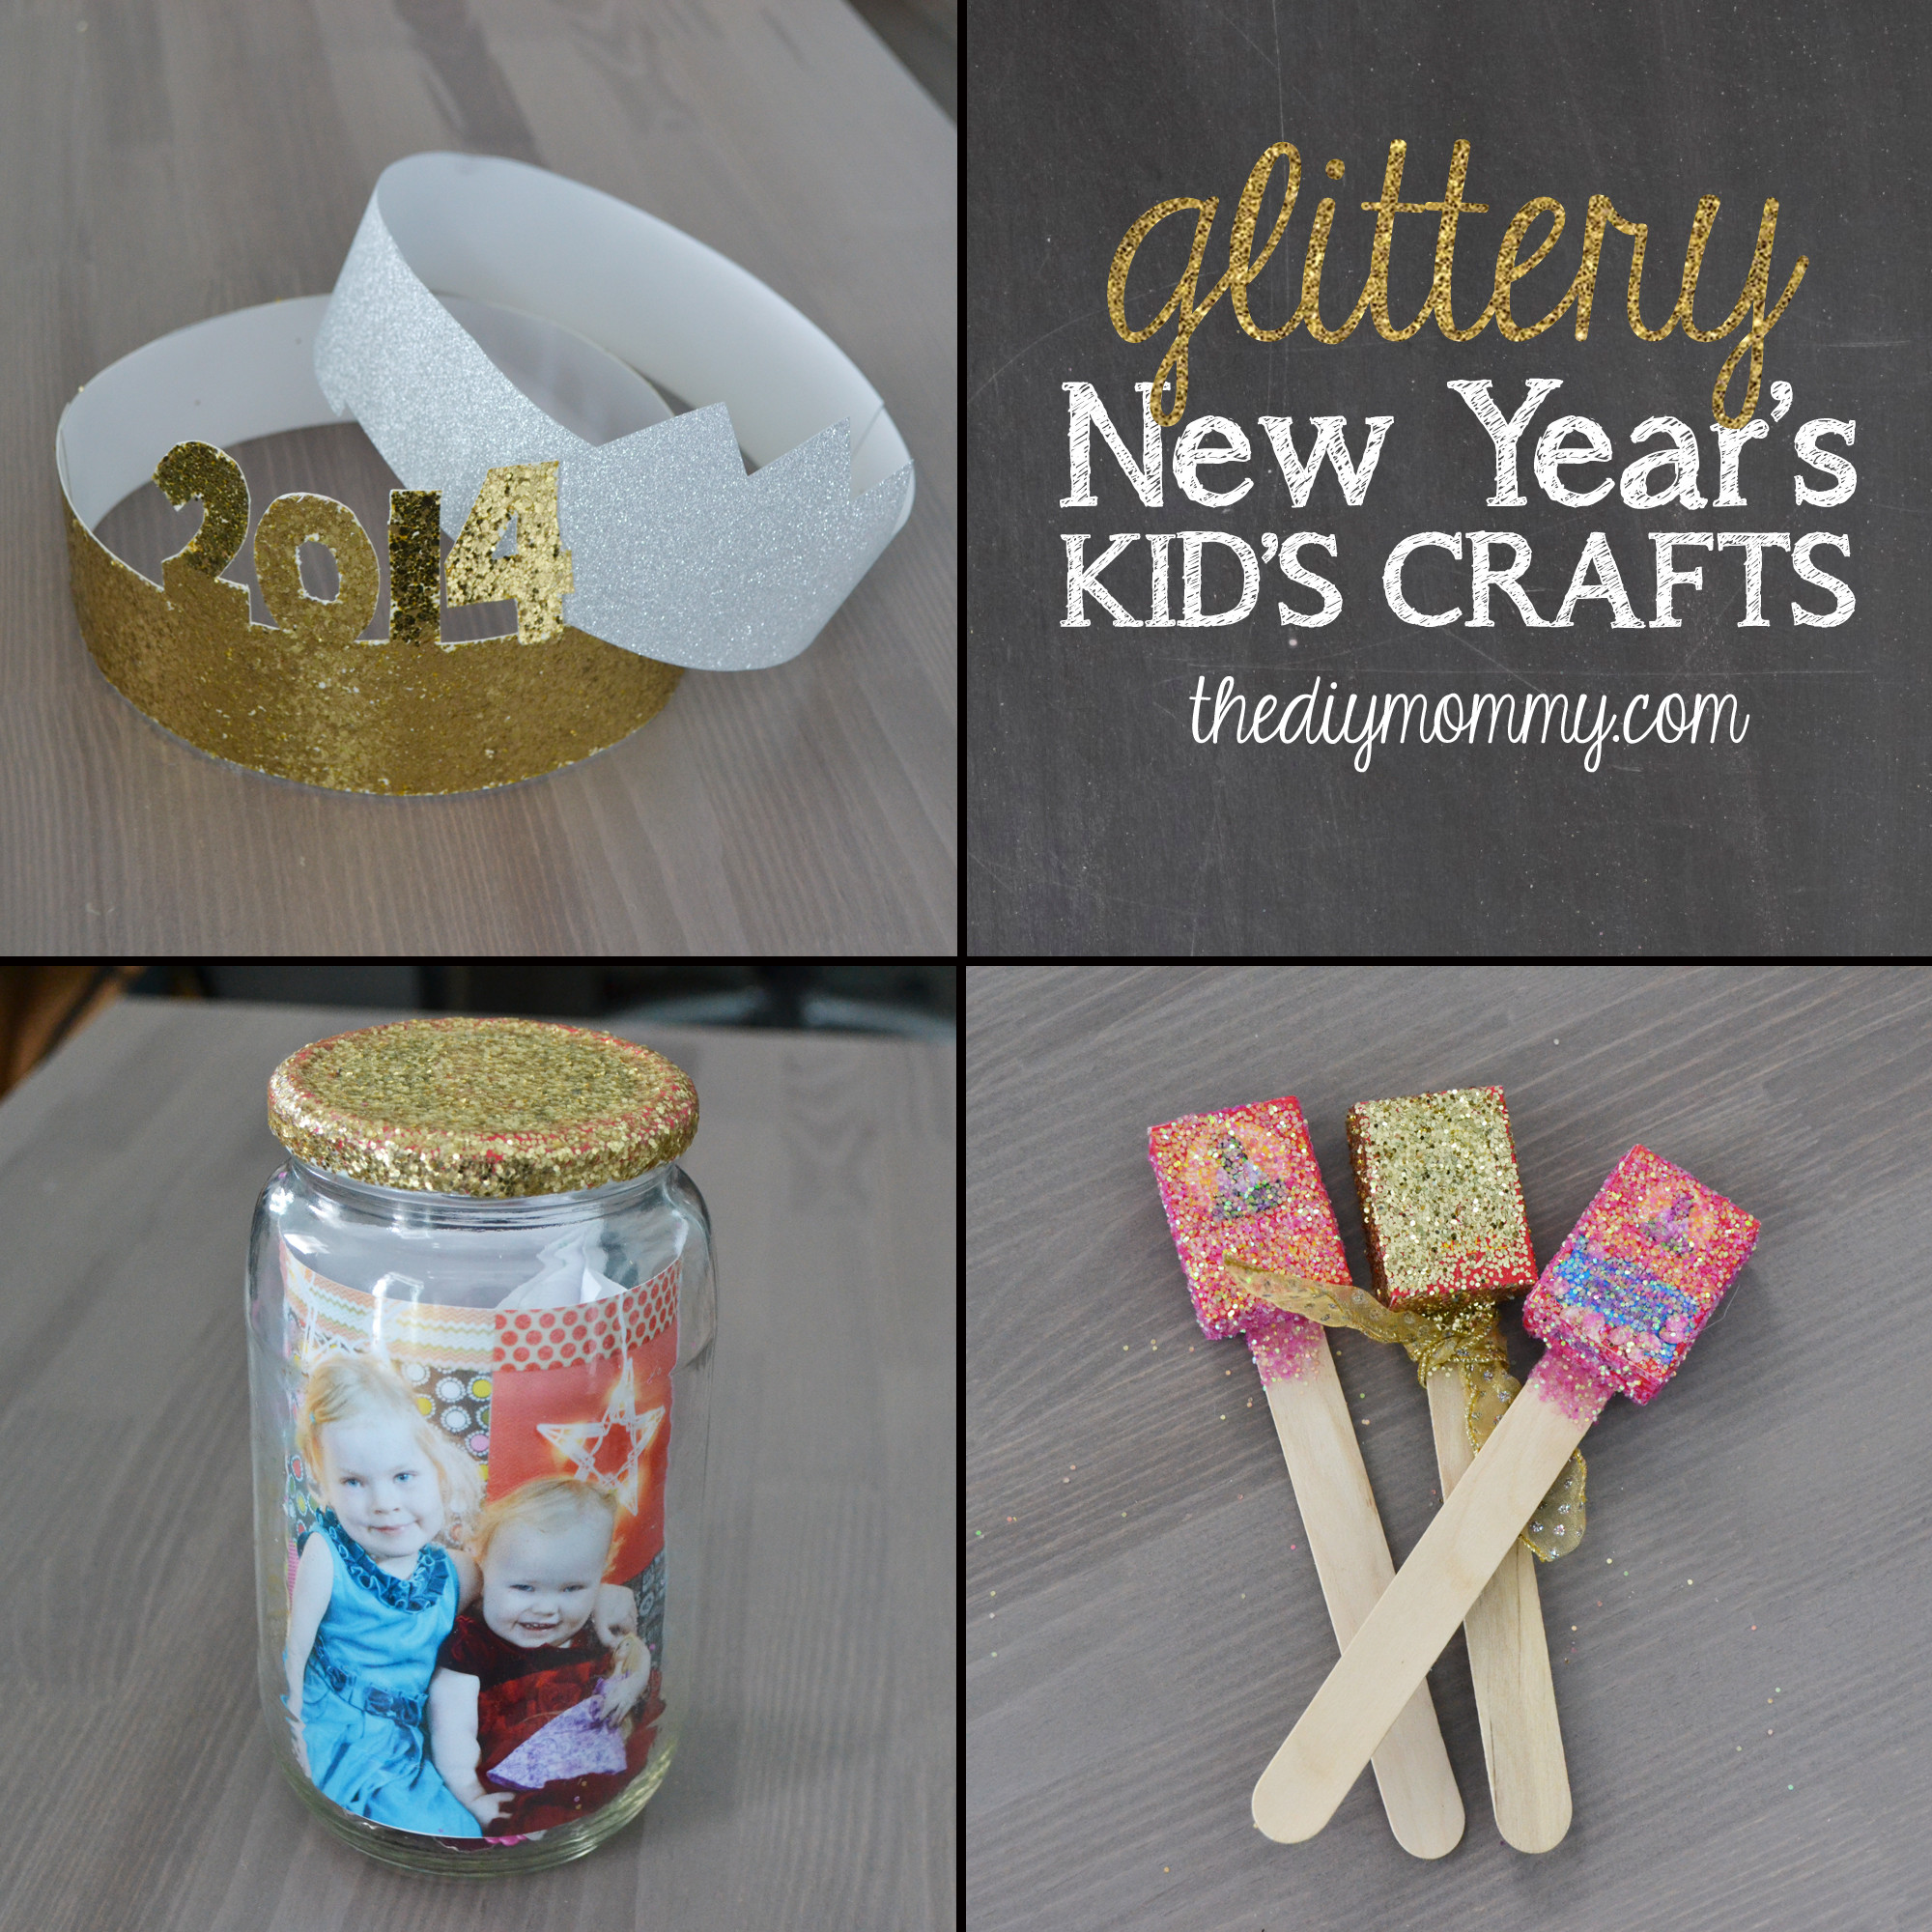 DIY Craft For Toddlers  Make Glittery New Year's Kid's Crafts – The News